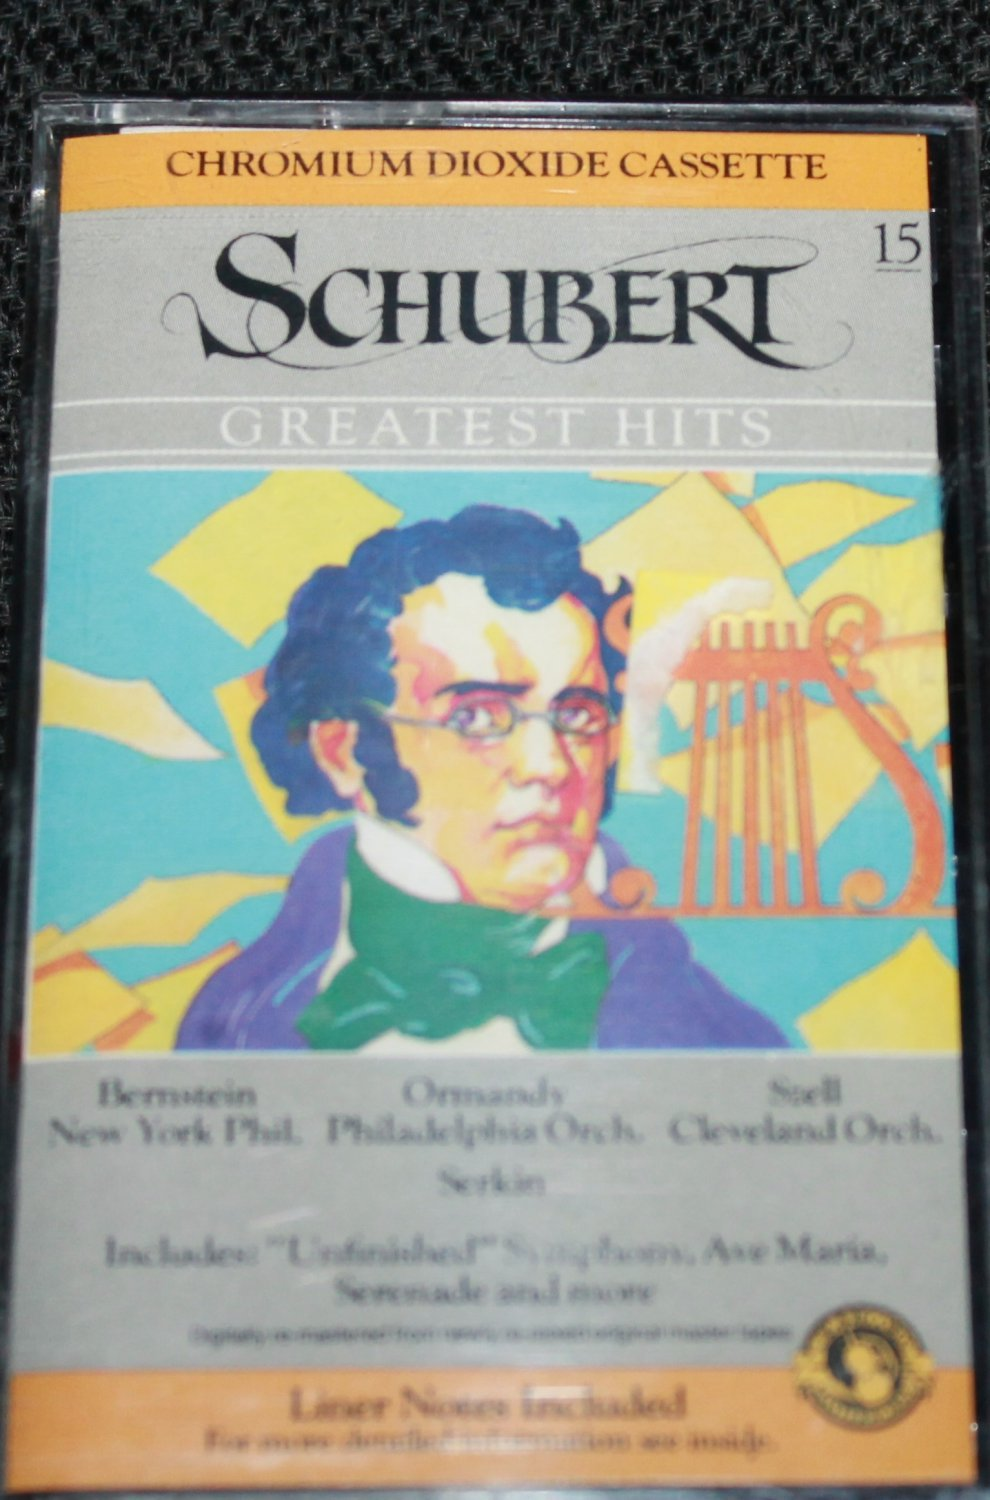 NEW Schubert Greatest Hits classical music cassette tape